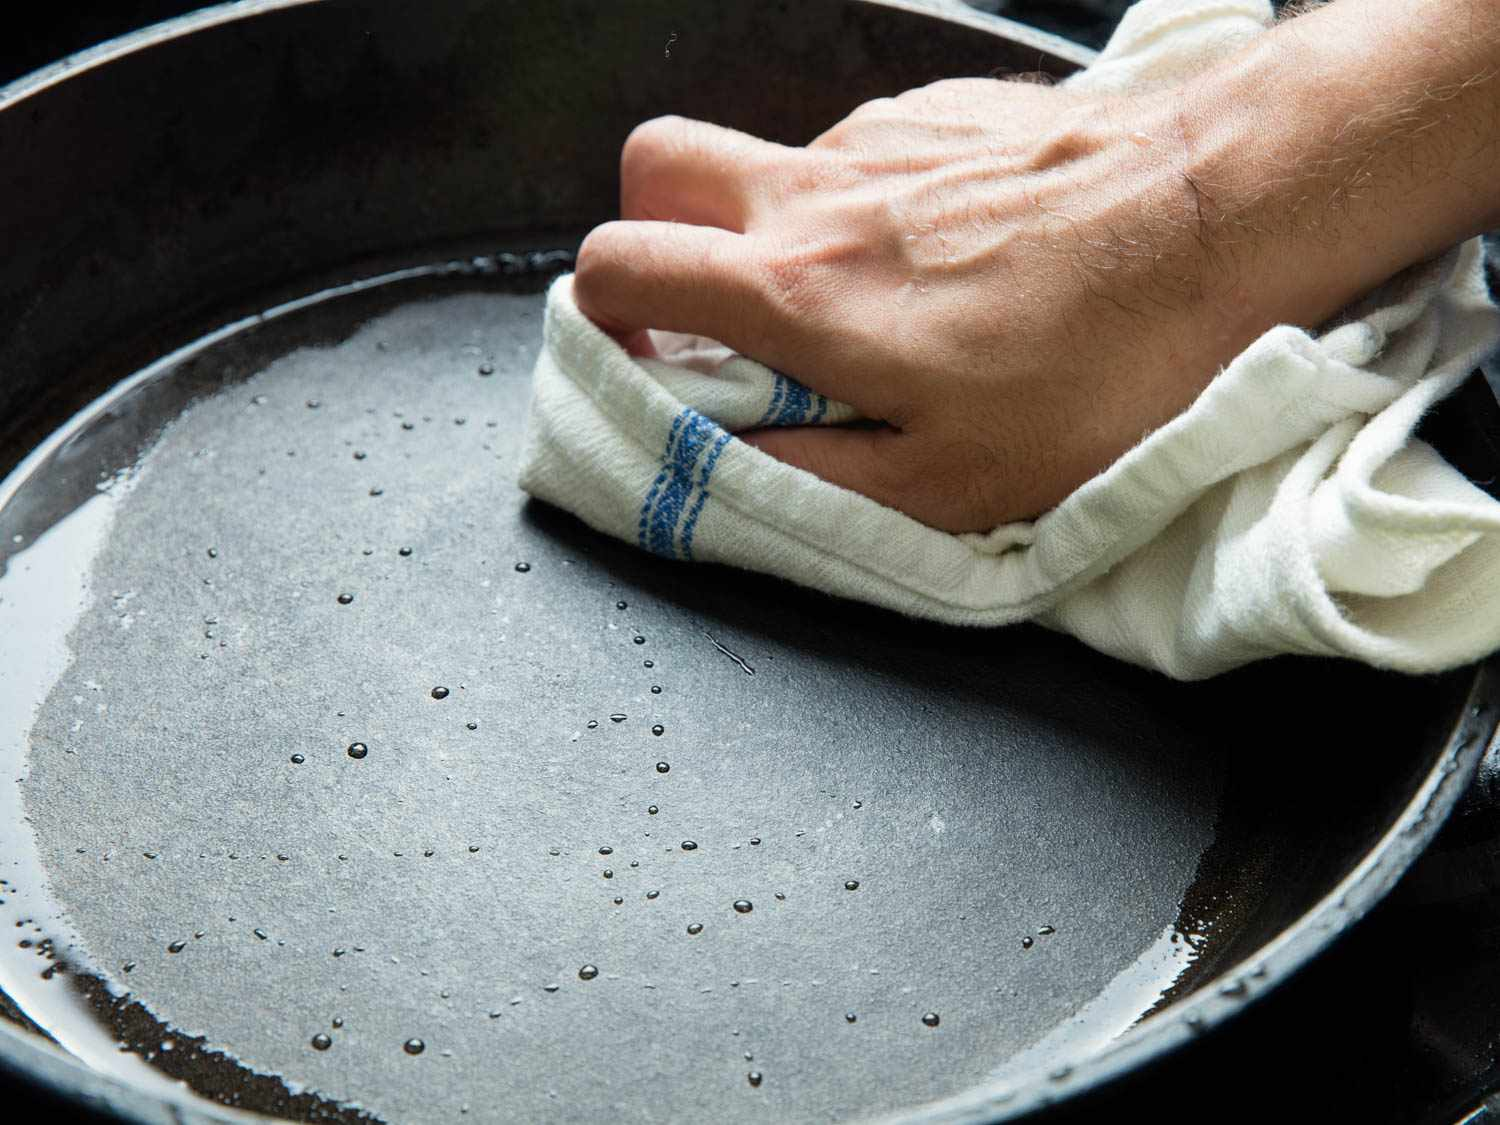 Drying a cast iron pan thoroughly after washing.